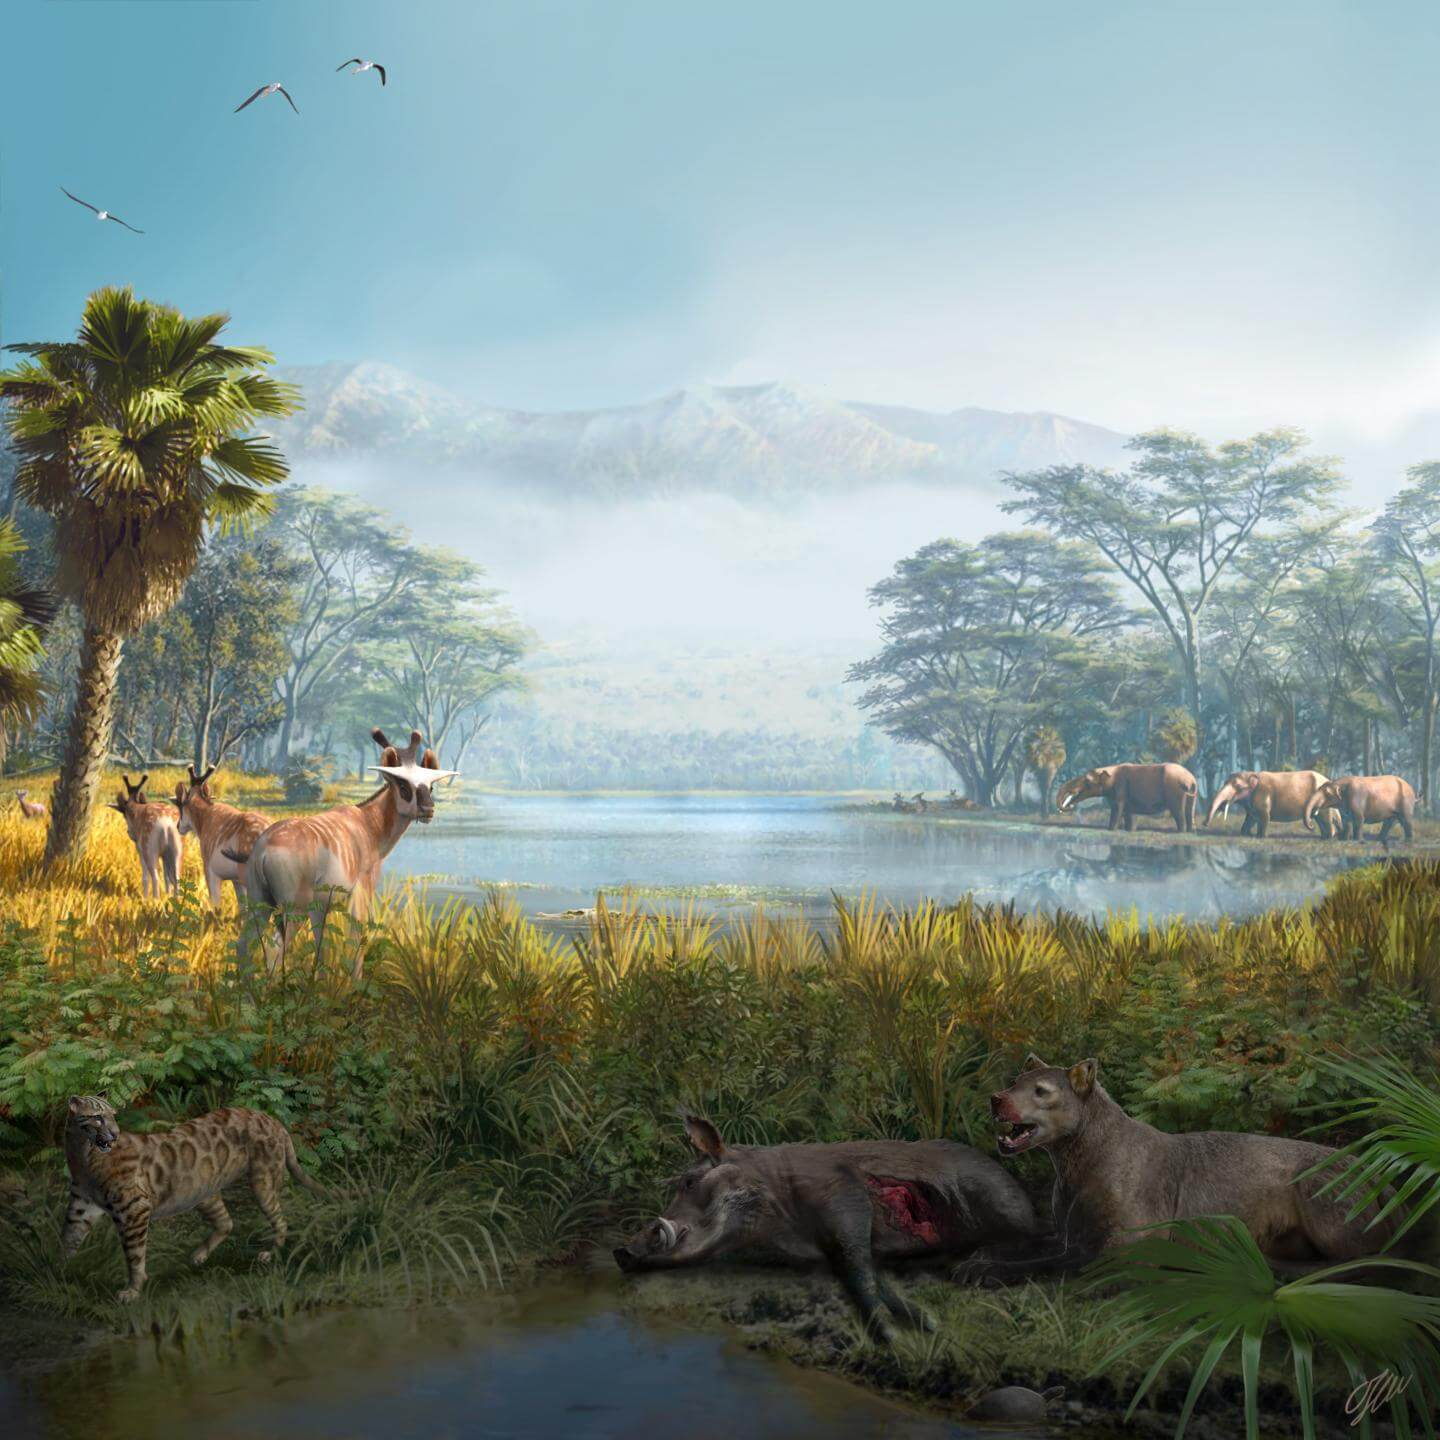 Aleoenvironmental reconstruction of the extinct mammal community recovered at the fossil site of els casots (spain), dated around 16 million years ago